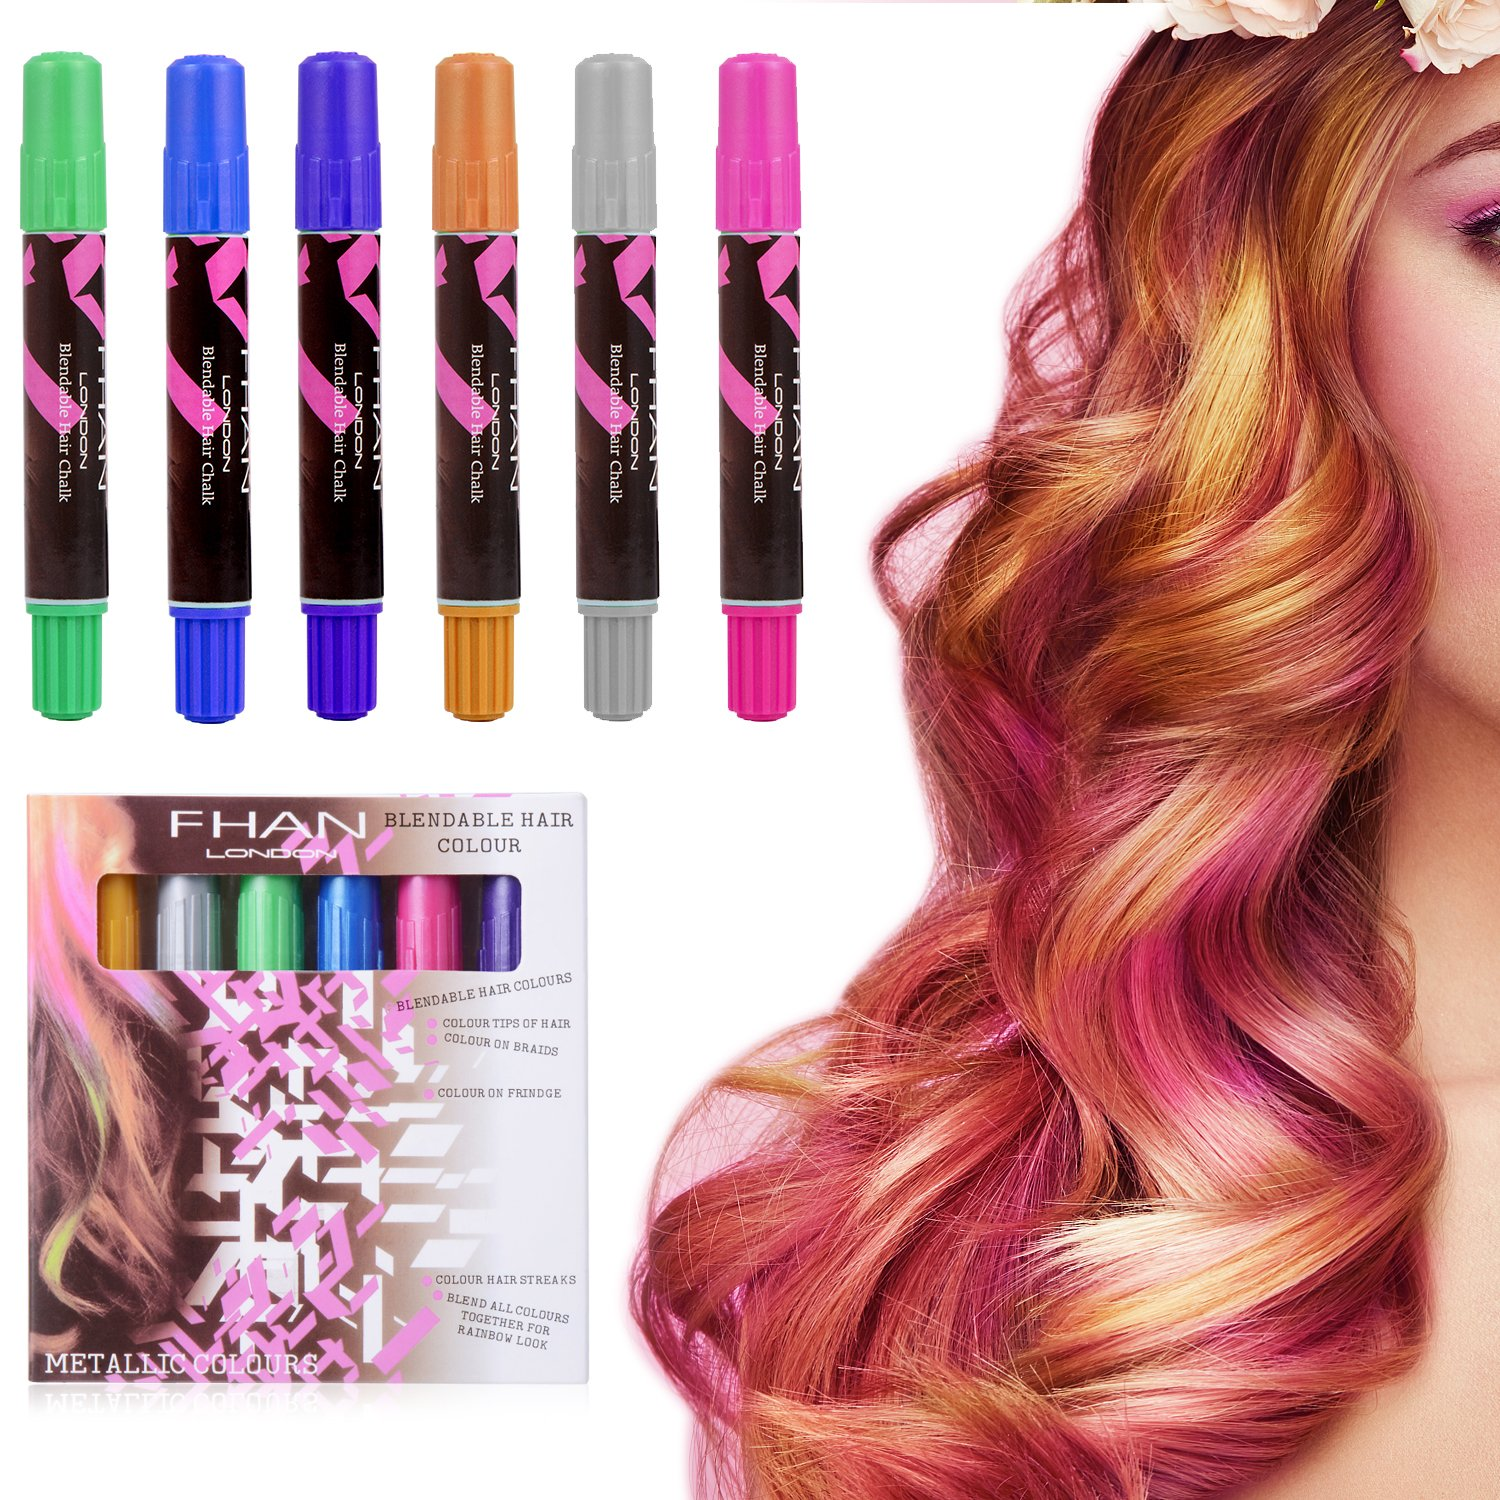 Best Hair Coloring Products: Ameauty Hair Chalk, 6 Colorful Non ...